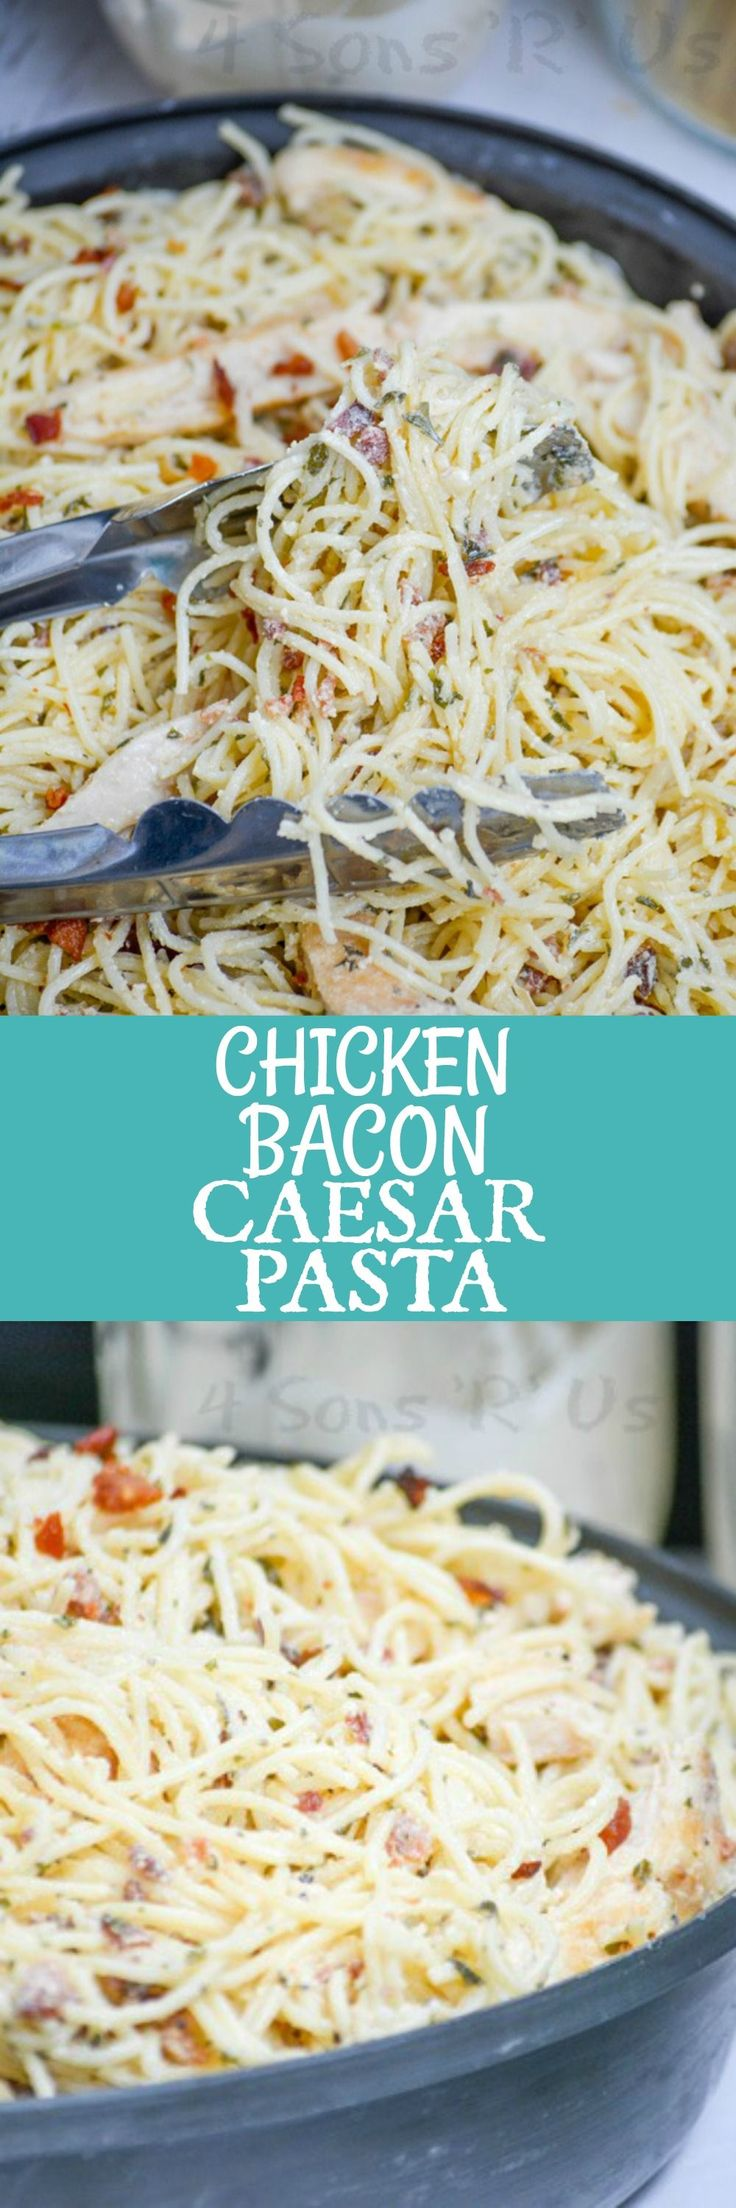 It's quick and easy, it's creamy pasta Heaven. Studded with crispy crackles of bacon, chunks of tender juicy chicken, and bound together with a thick Caesar dressing- Chicken Bacon Caesar Pasta is a full meal that masquerades as a hot pasta salad.